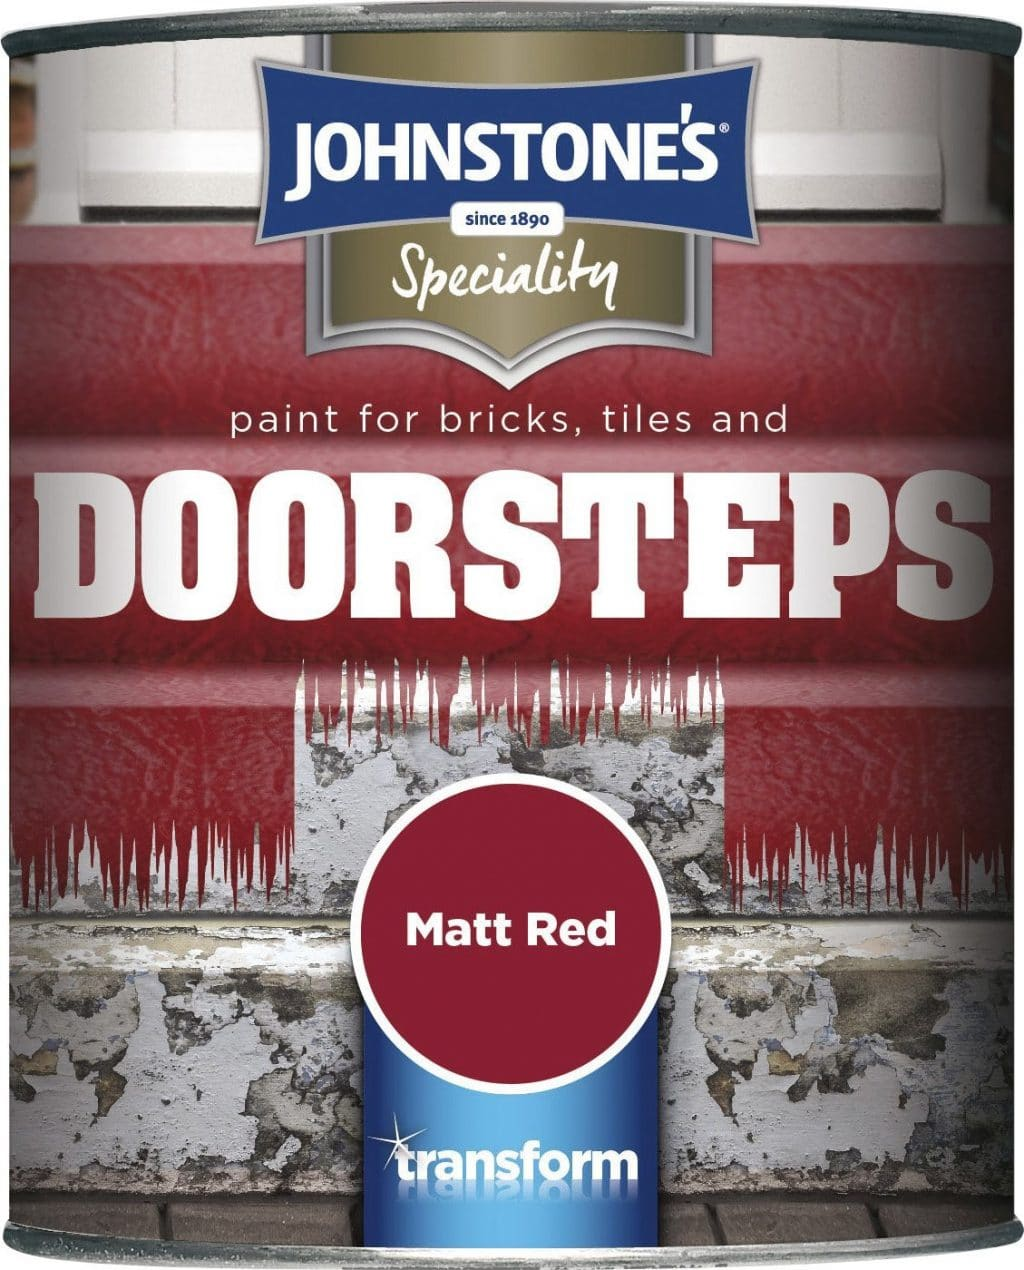 johnstones for doorsteps